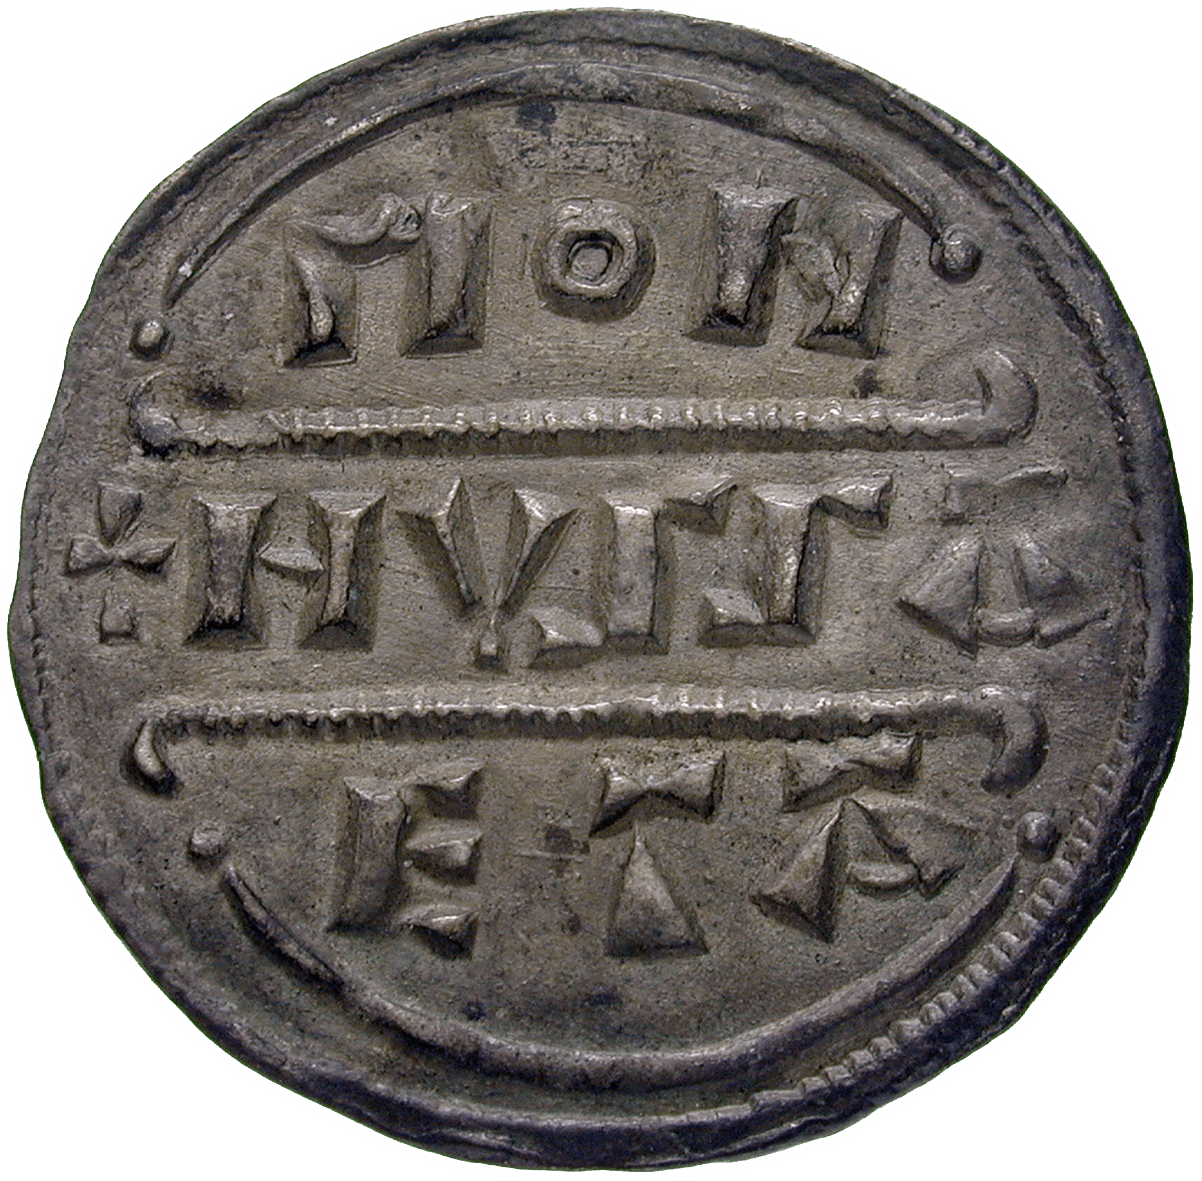 Britain, Kingdom of Mercia, Burgred, Penny (reverse)